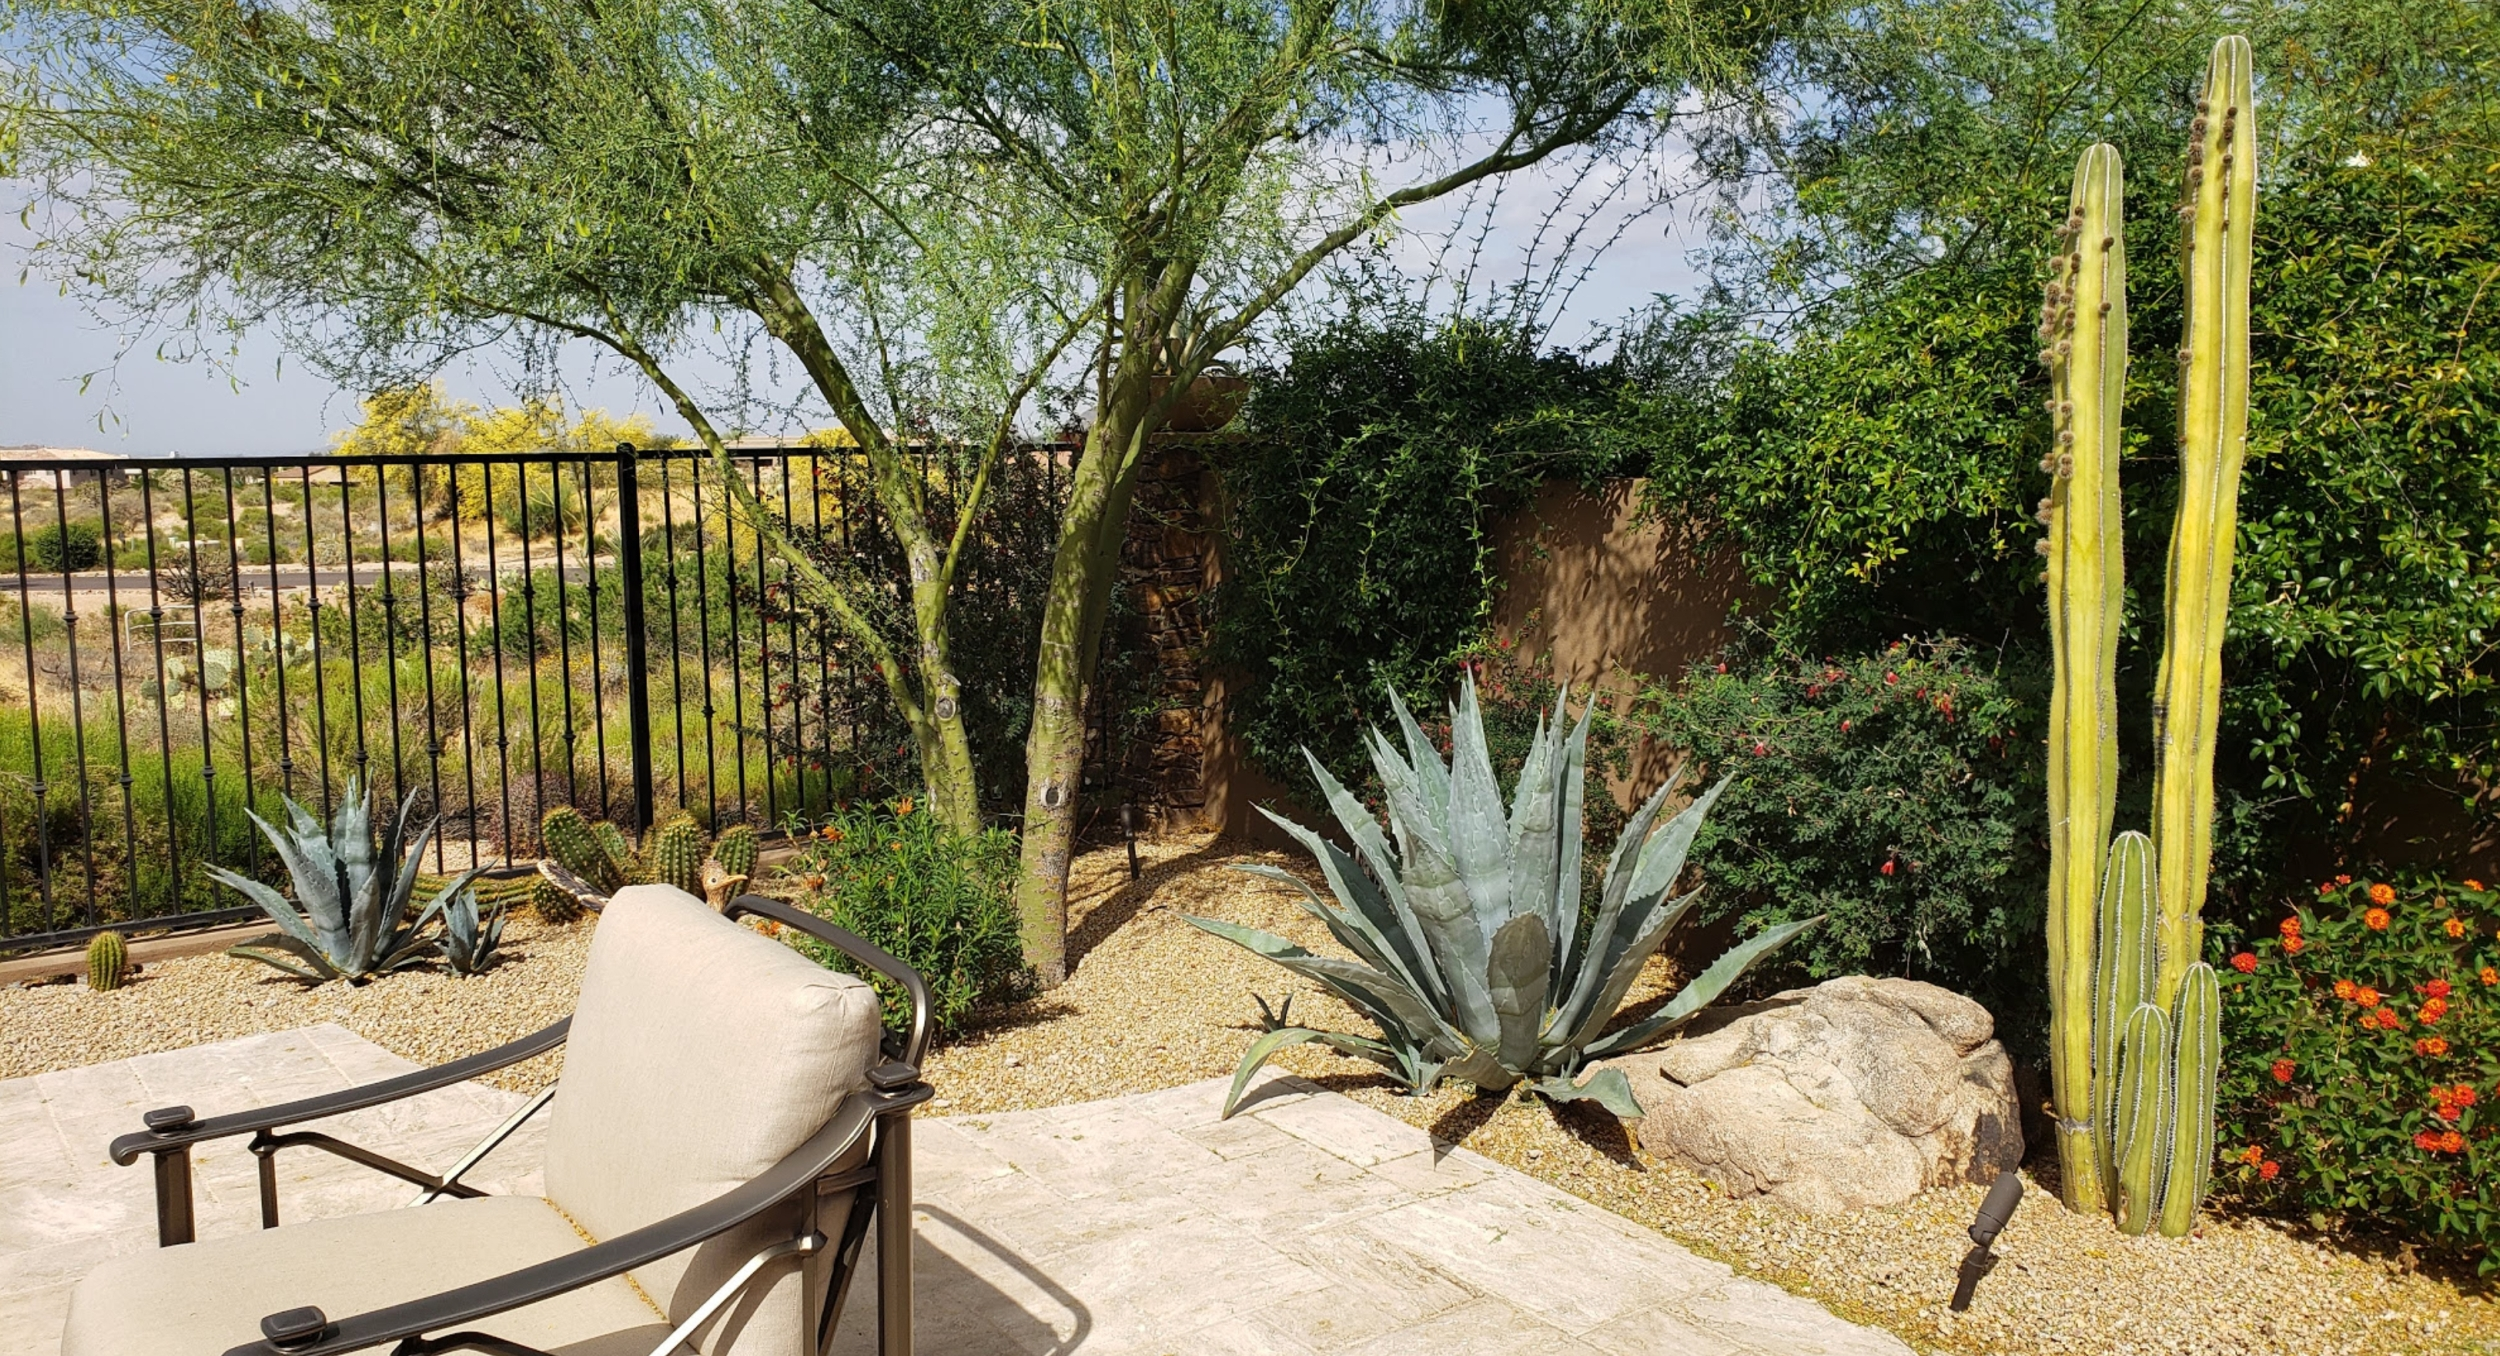 Desert plants are tough, but in your Scottsdale or Phoenix landscaping, watering enough to keep them in prime health make your yard look better and your plants easier to care for.